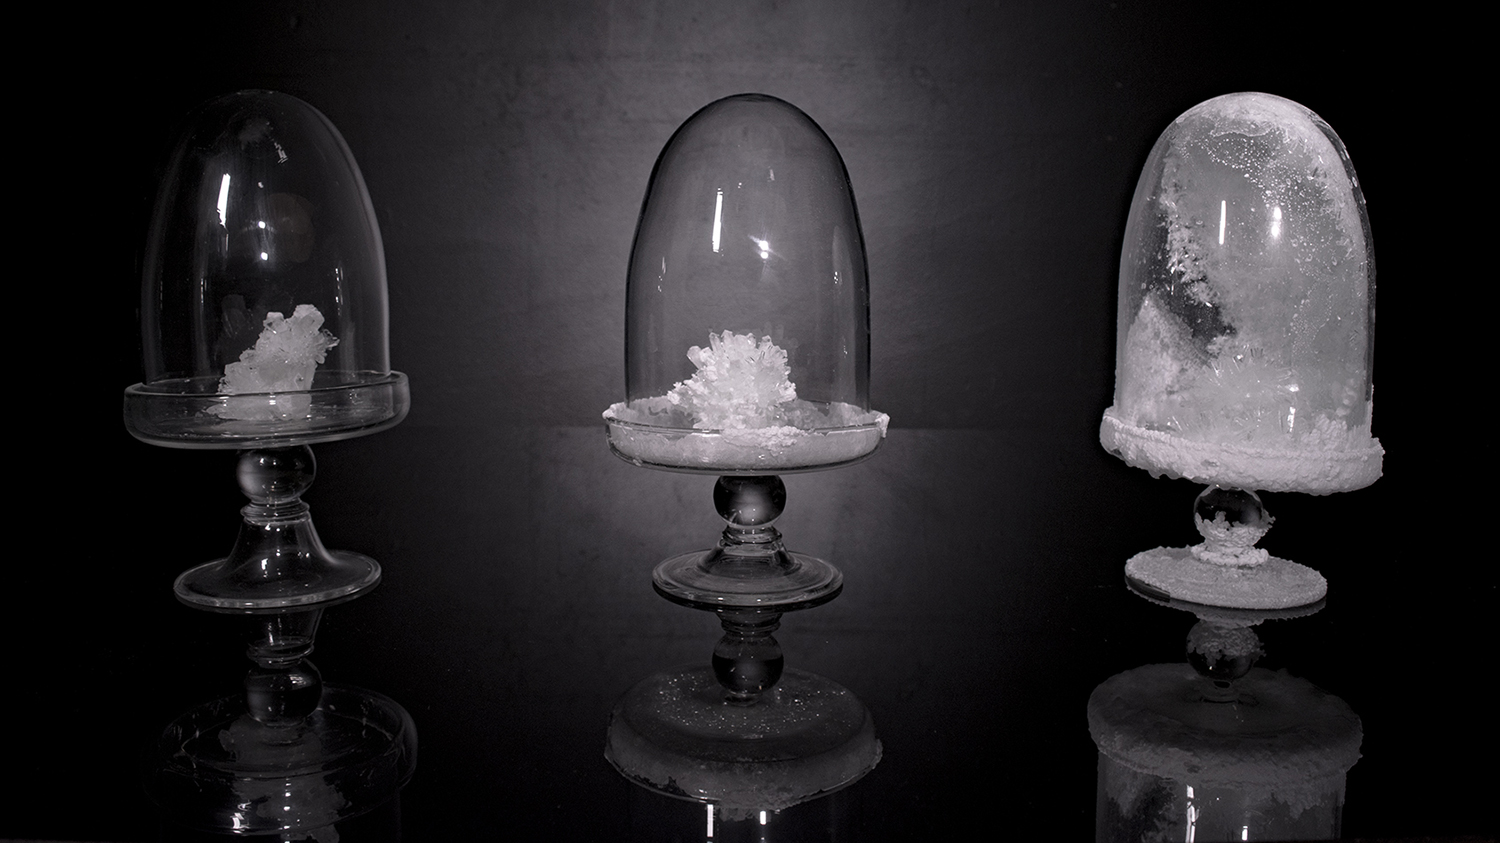 A set of three glass vessels with crystal growing inside.